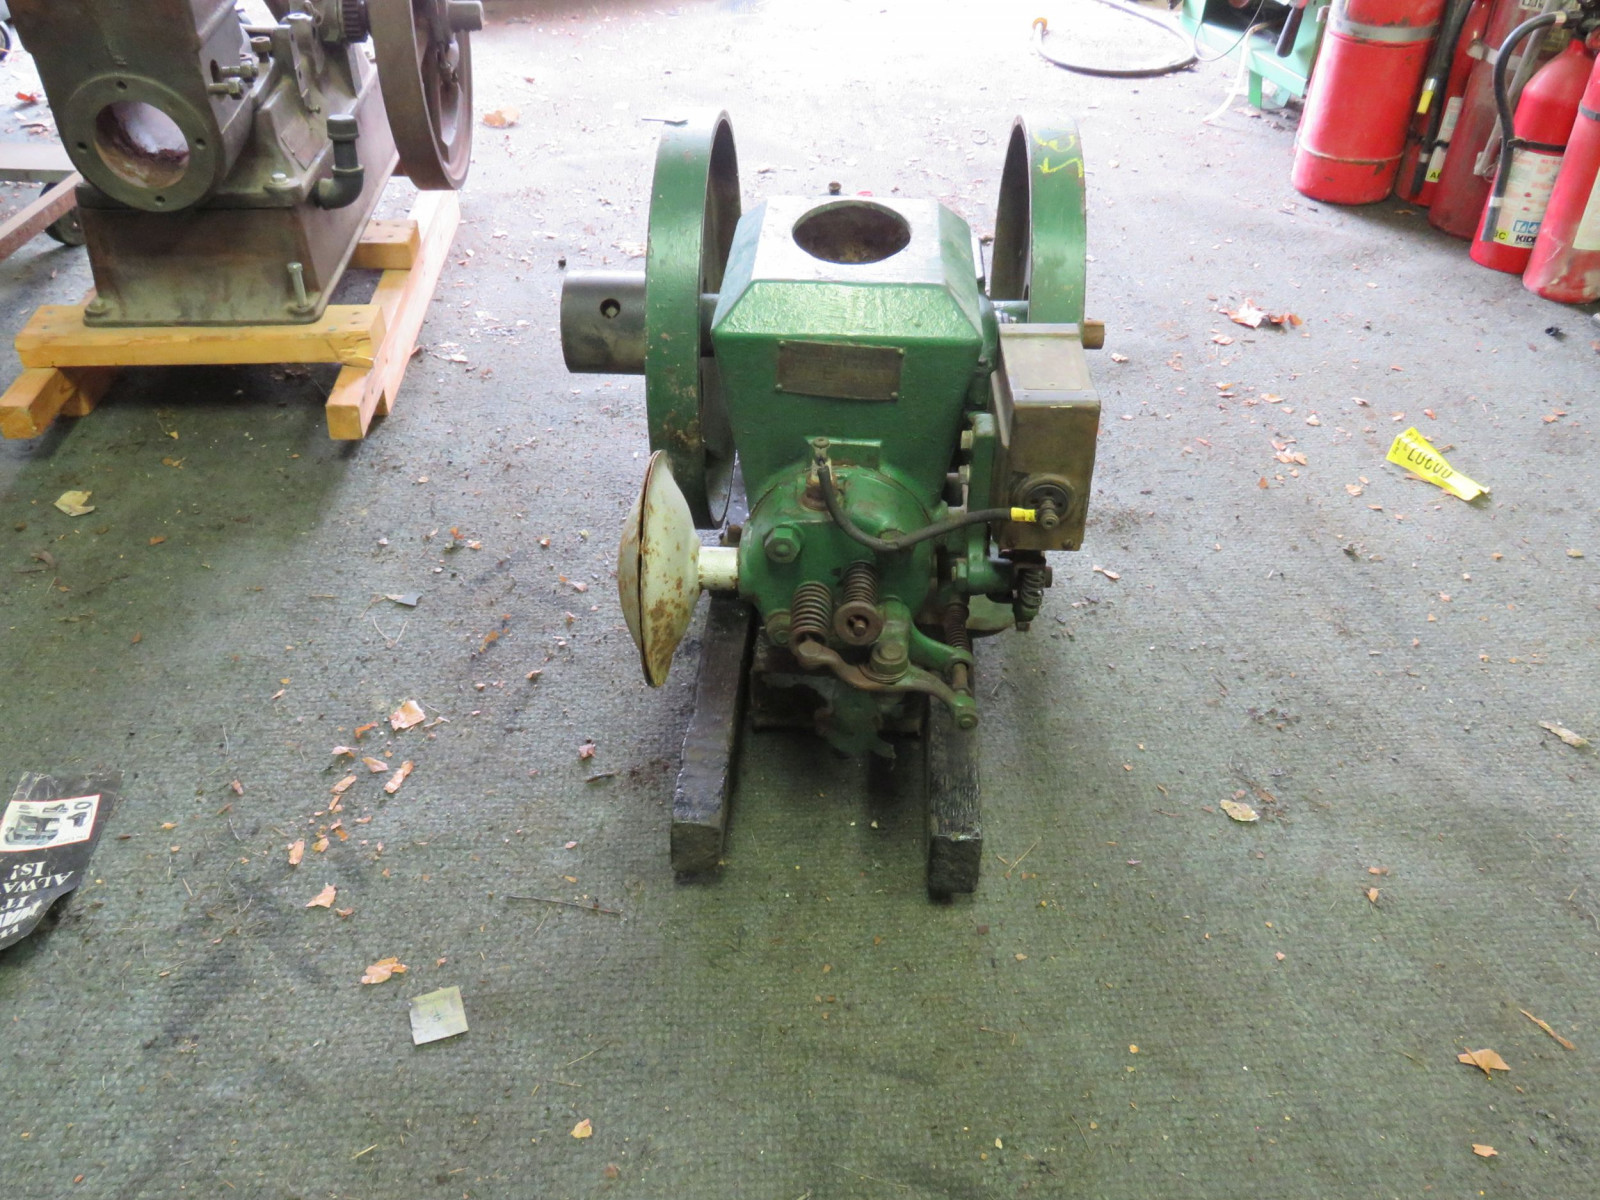 Stover 1 1/2 HP Stationary Gas Engine - Image 2